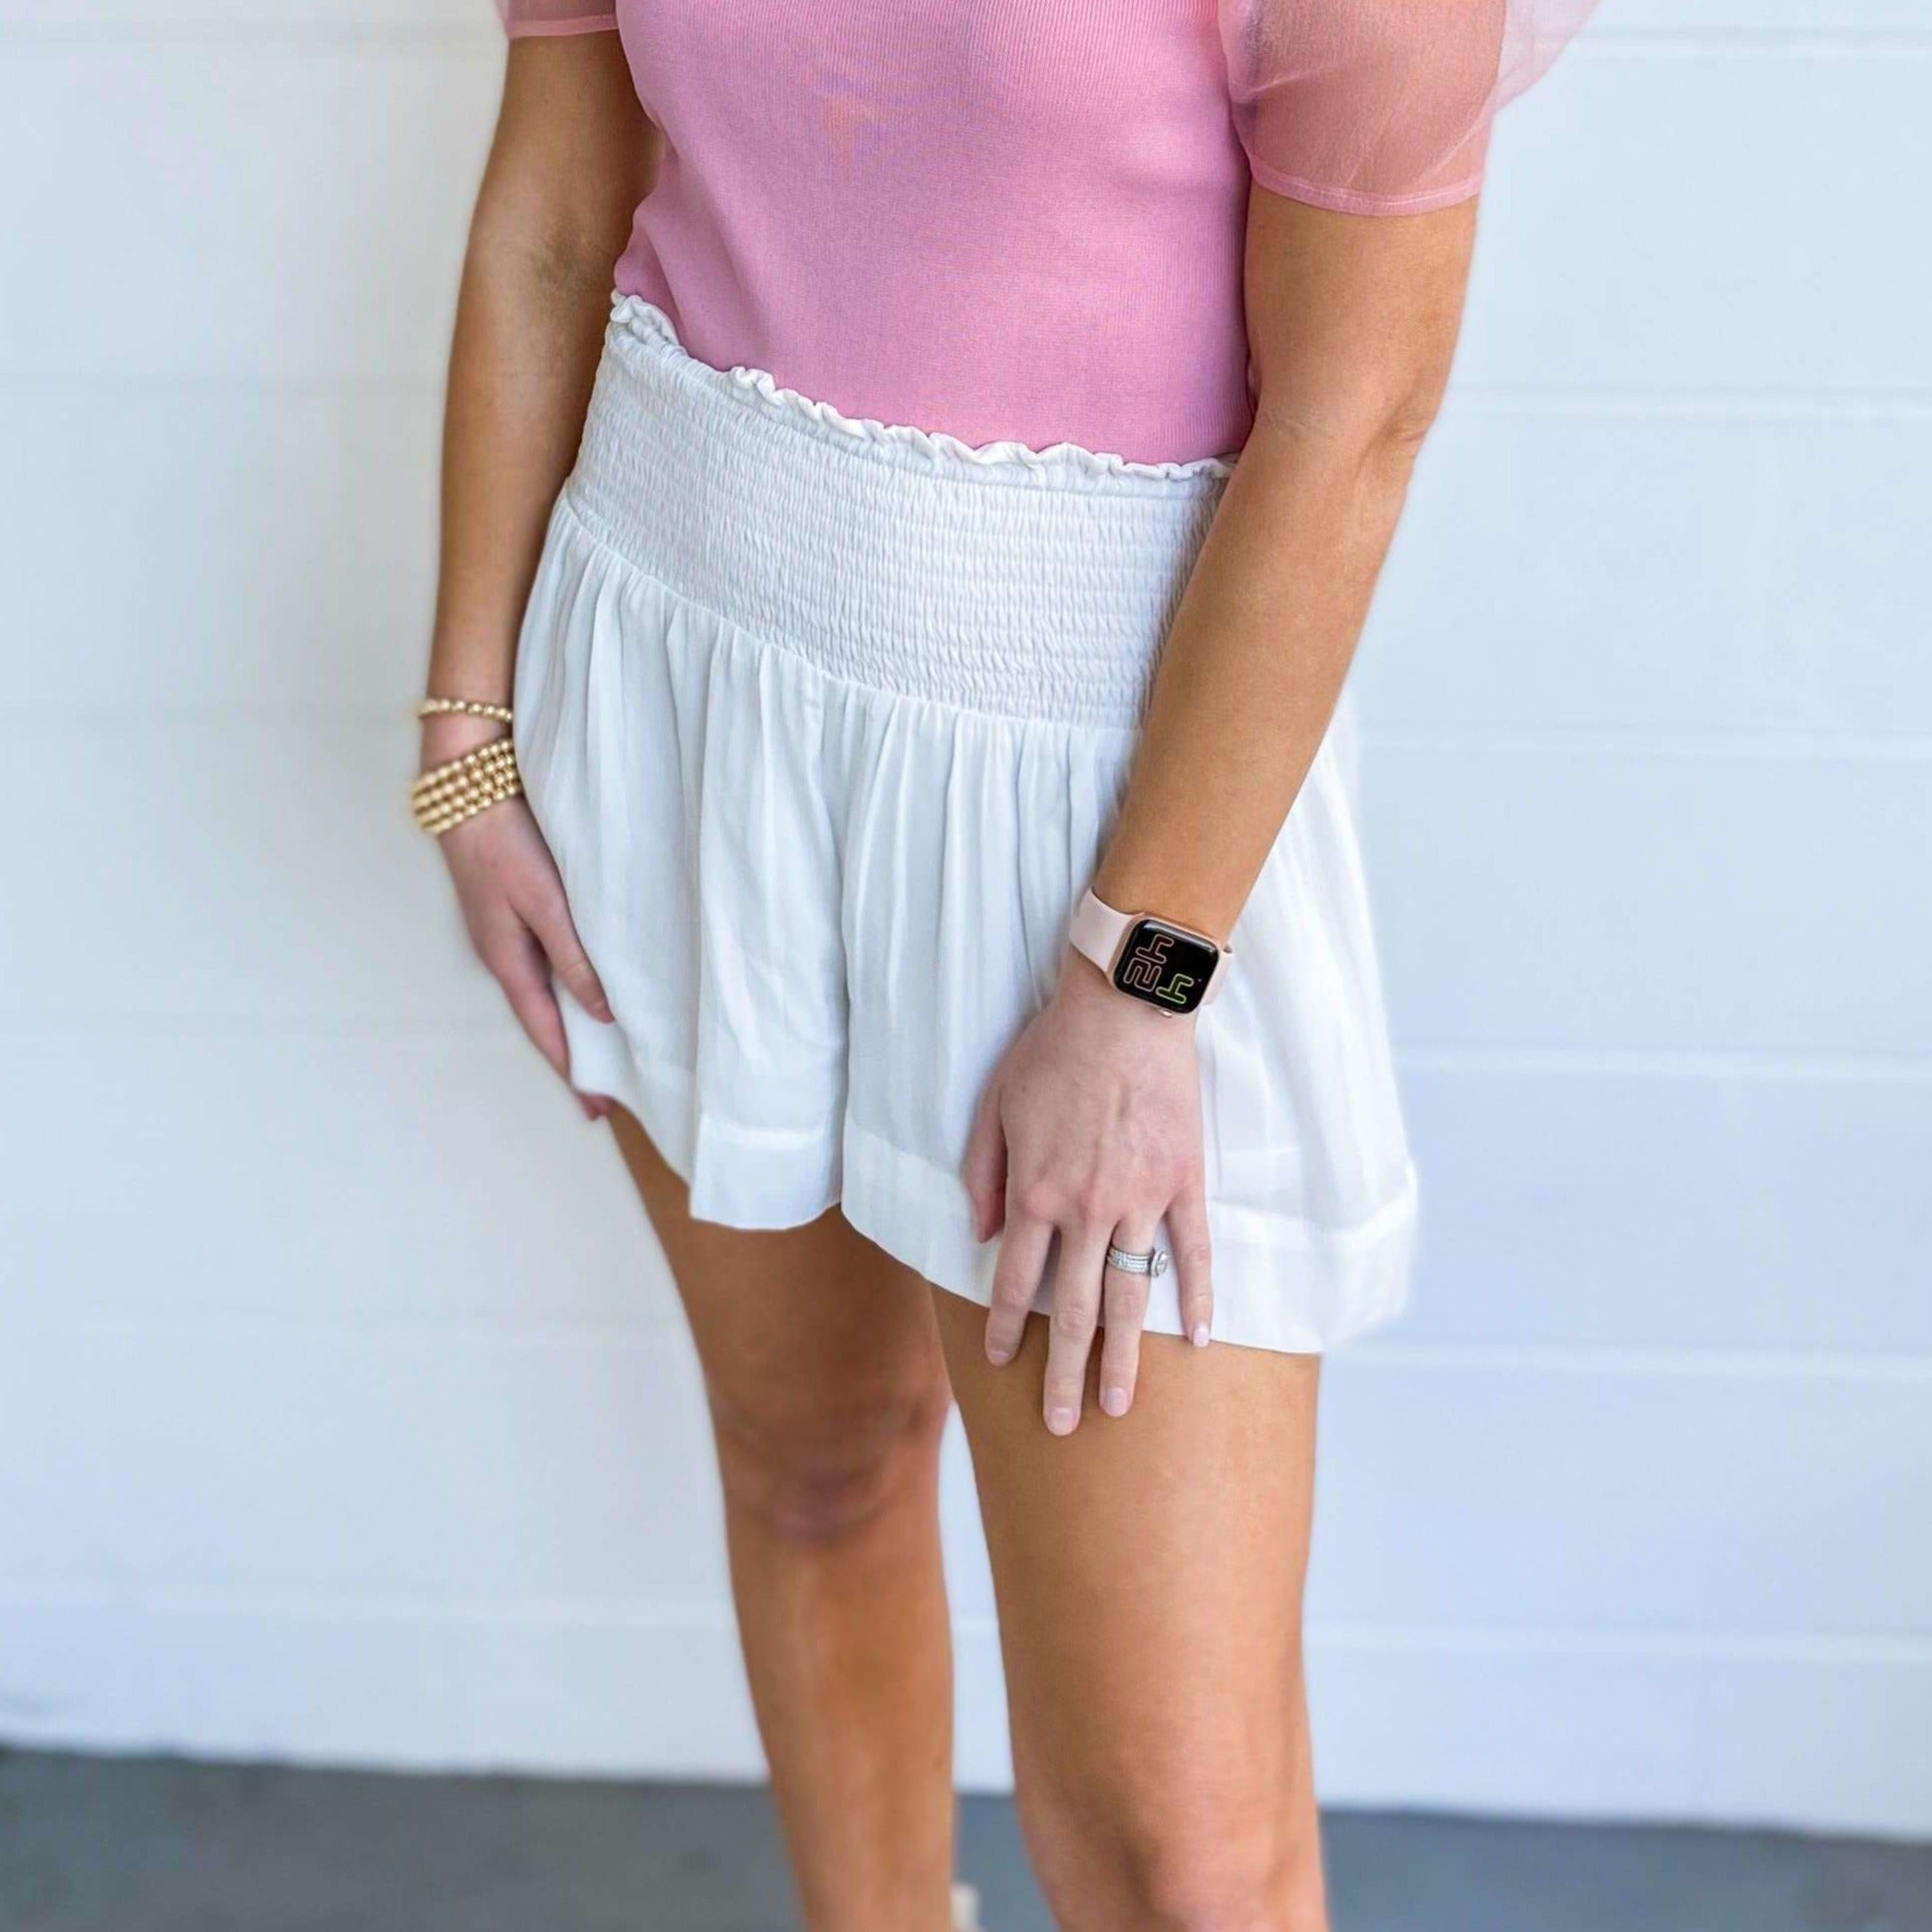 8.28 Boutique:8.28 Boutique,Just in Time Smocked Waist Shorts,Bottoms